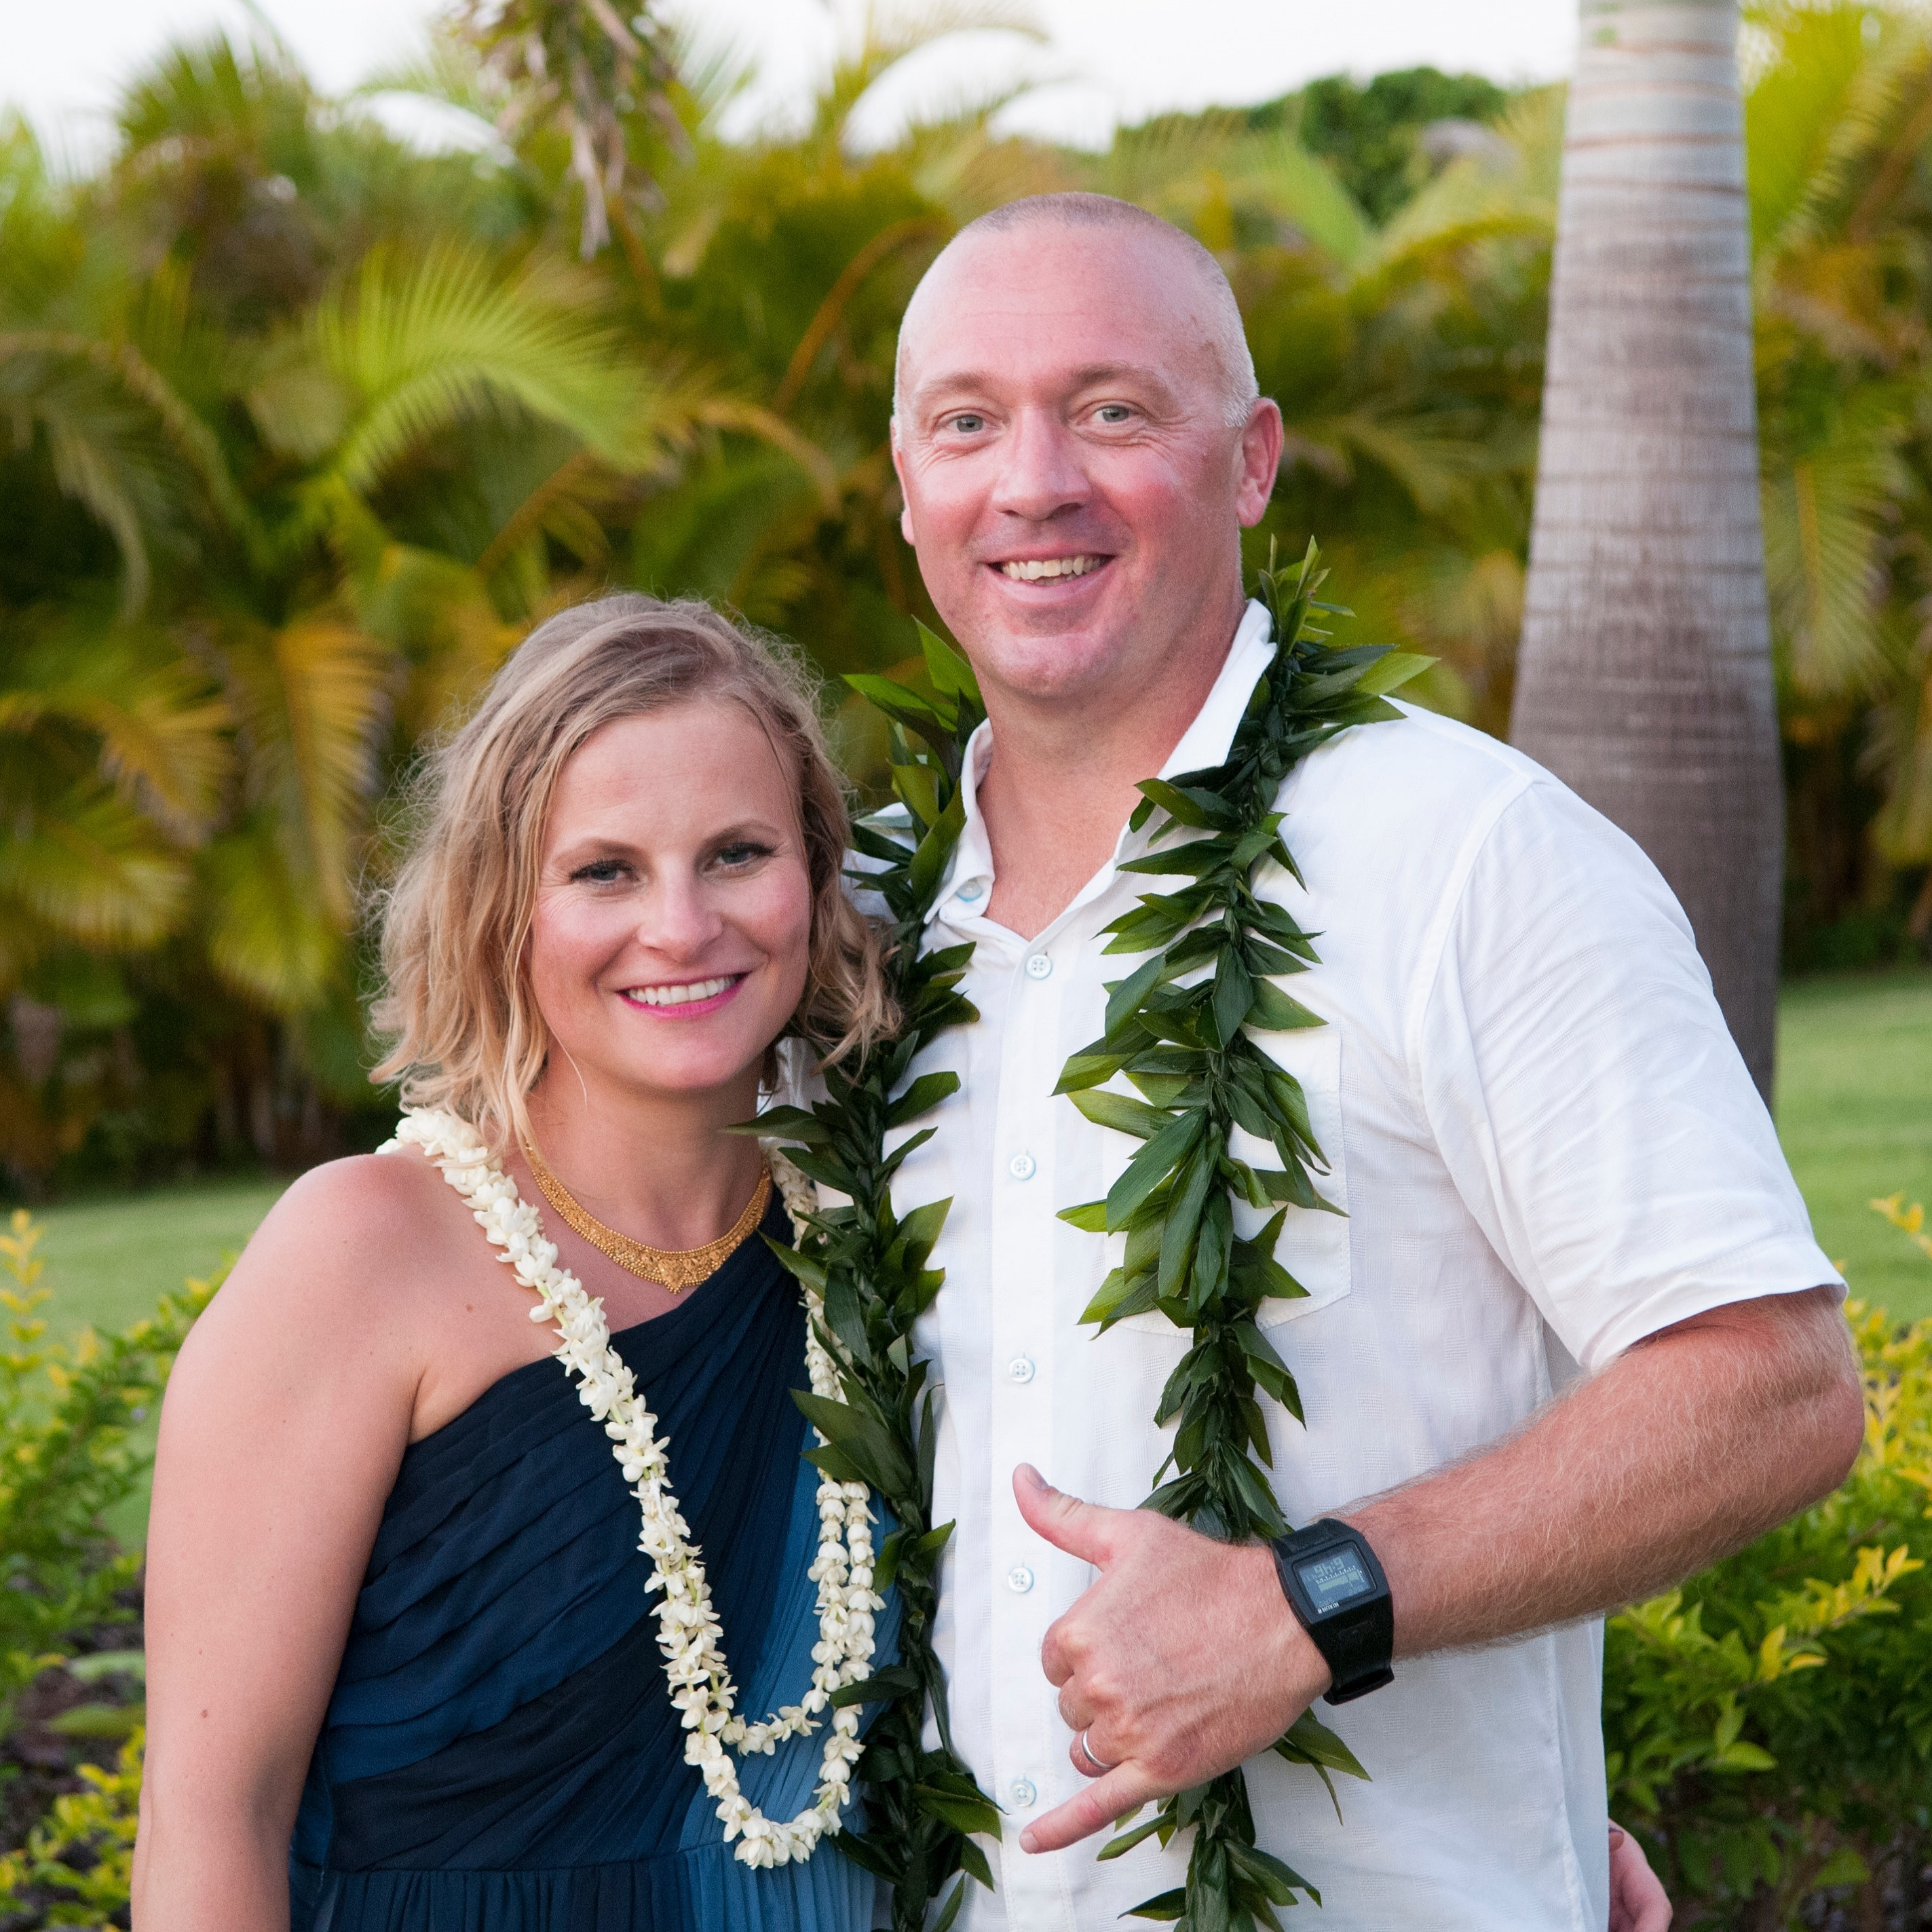 Eva and Michael Maui Finest Gifts Owners